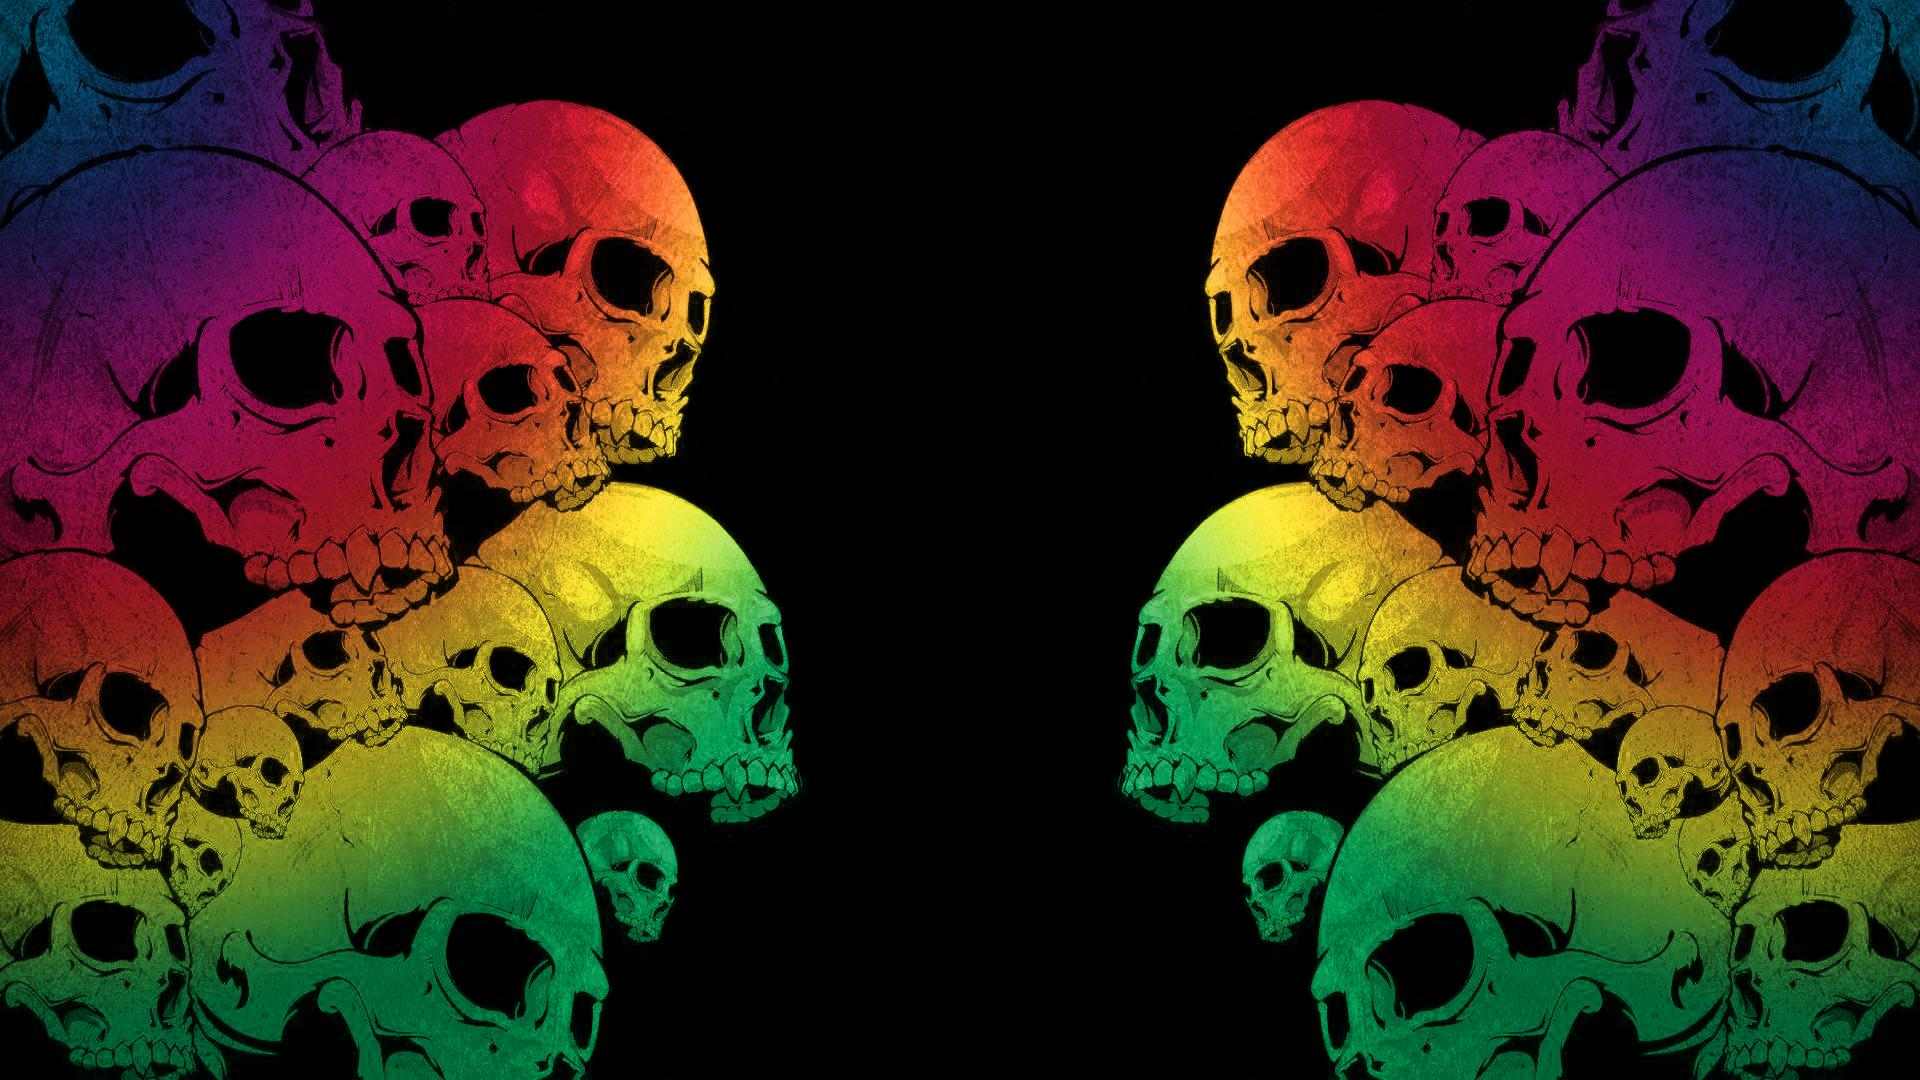 Skull Computer Wallpapers Desktop Backgrounds 1920x1080 ID310526 1920x1080